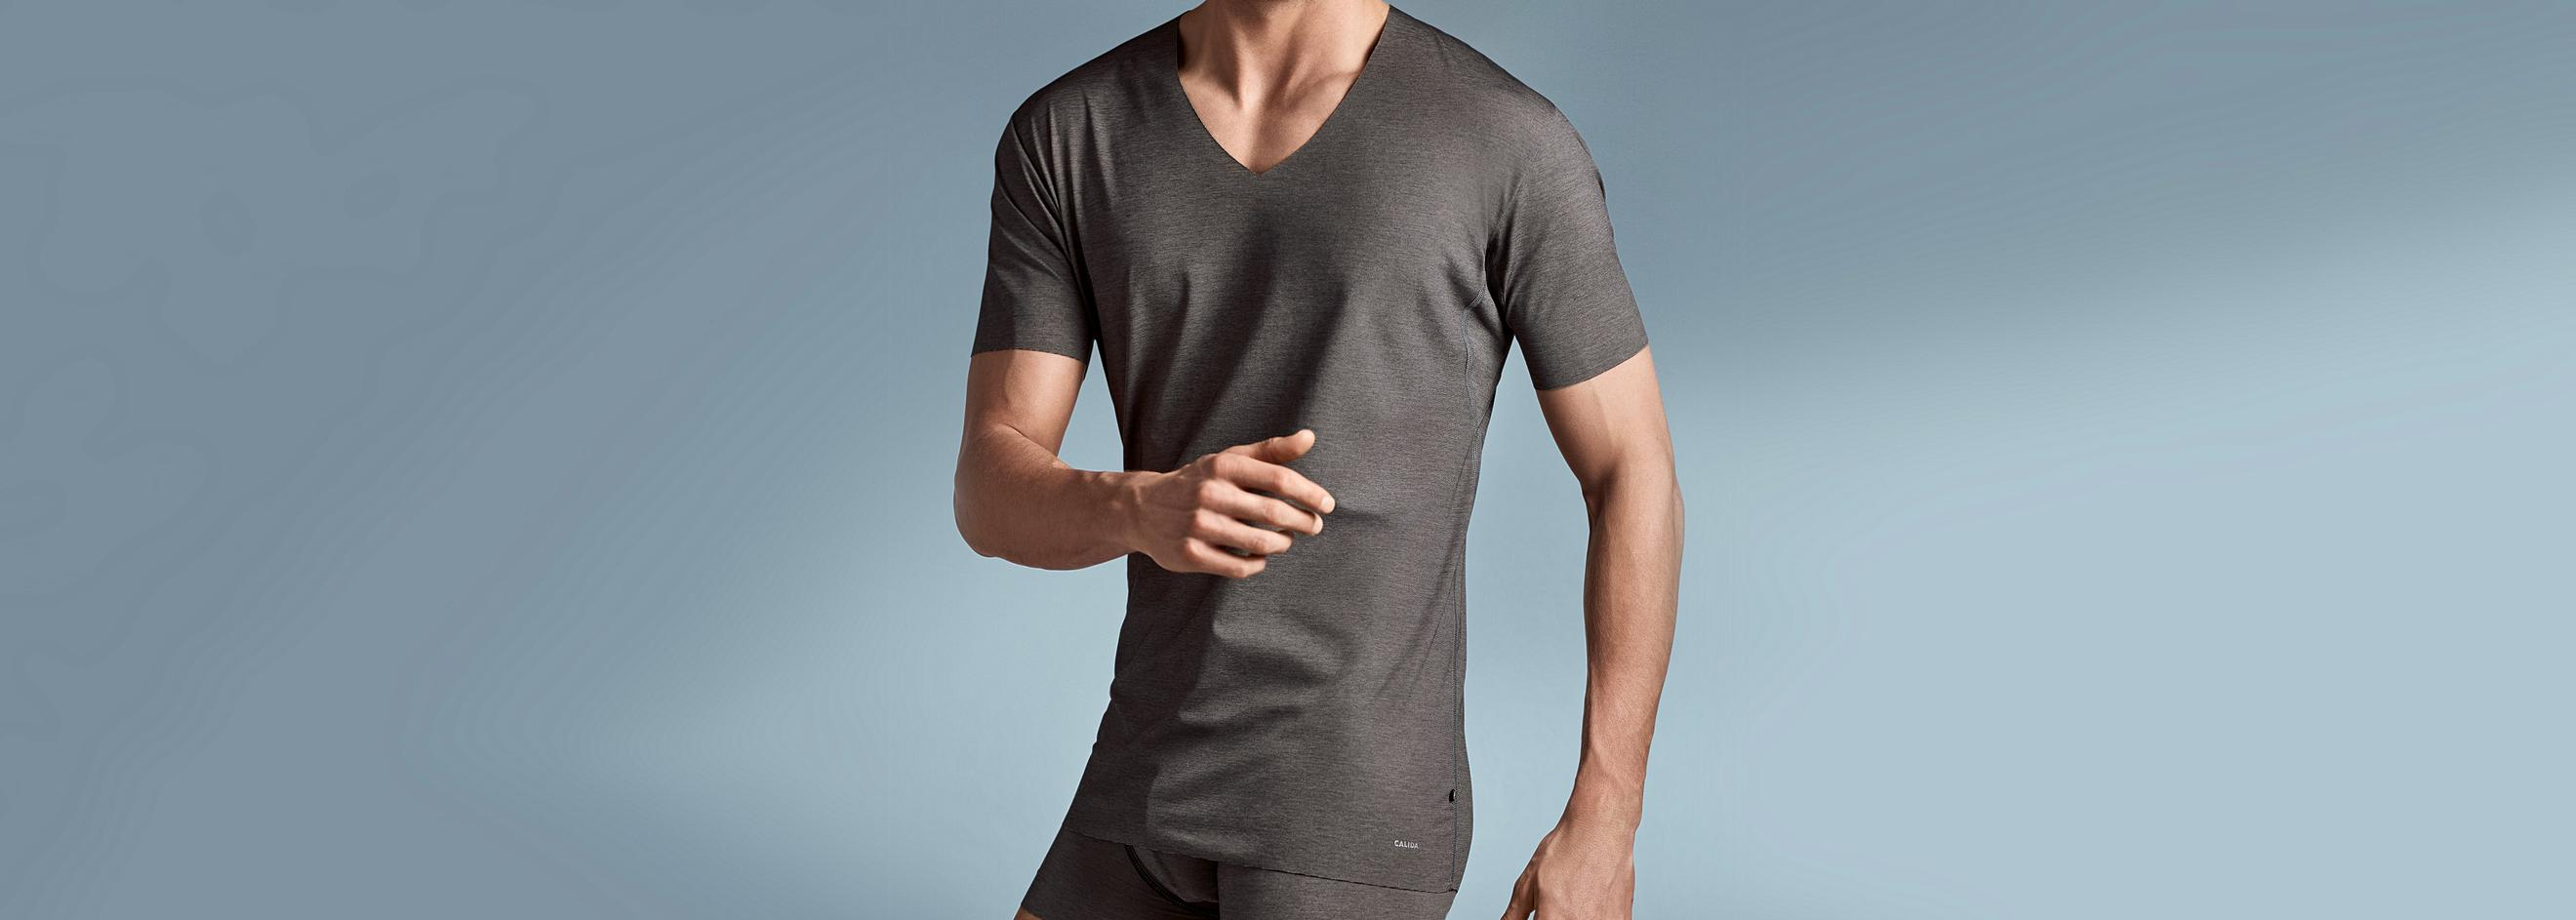 dac81bdd6a Men's tank tops, T-shirts & undershirts | CALIDA